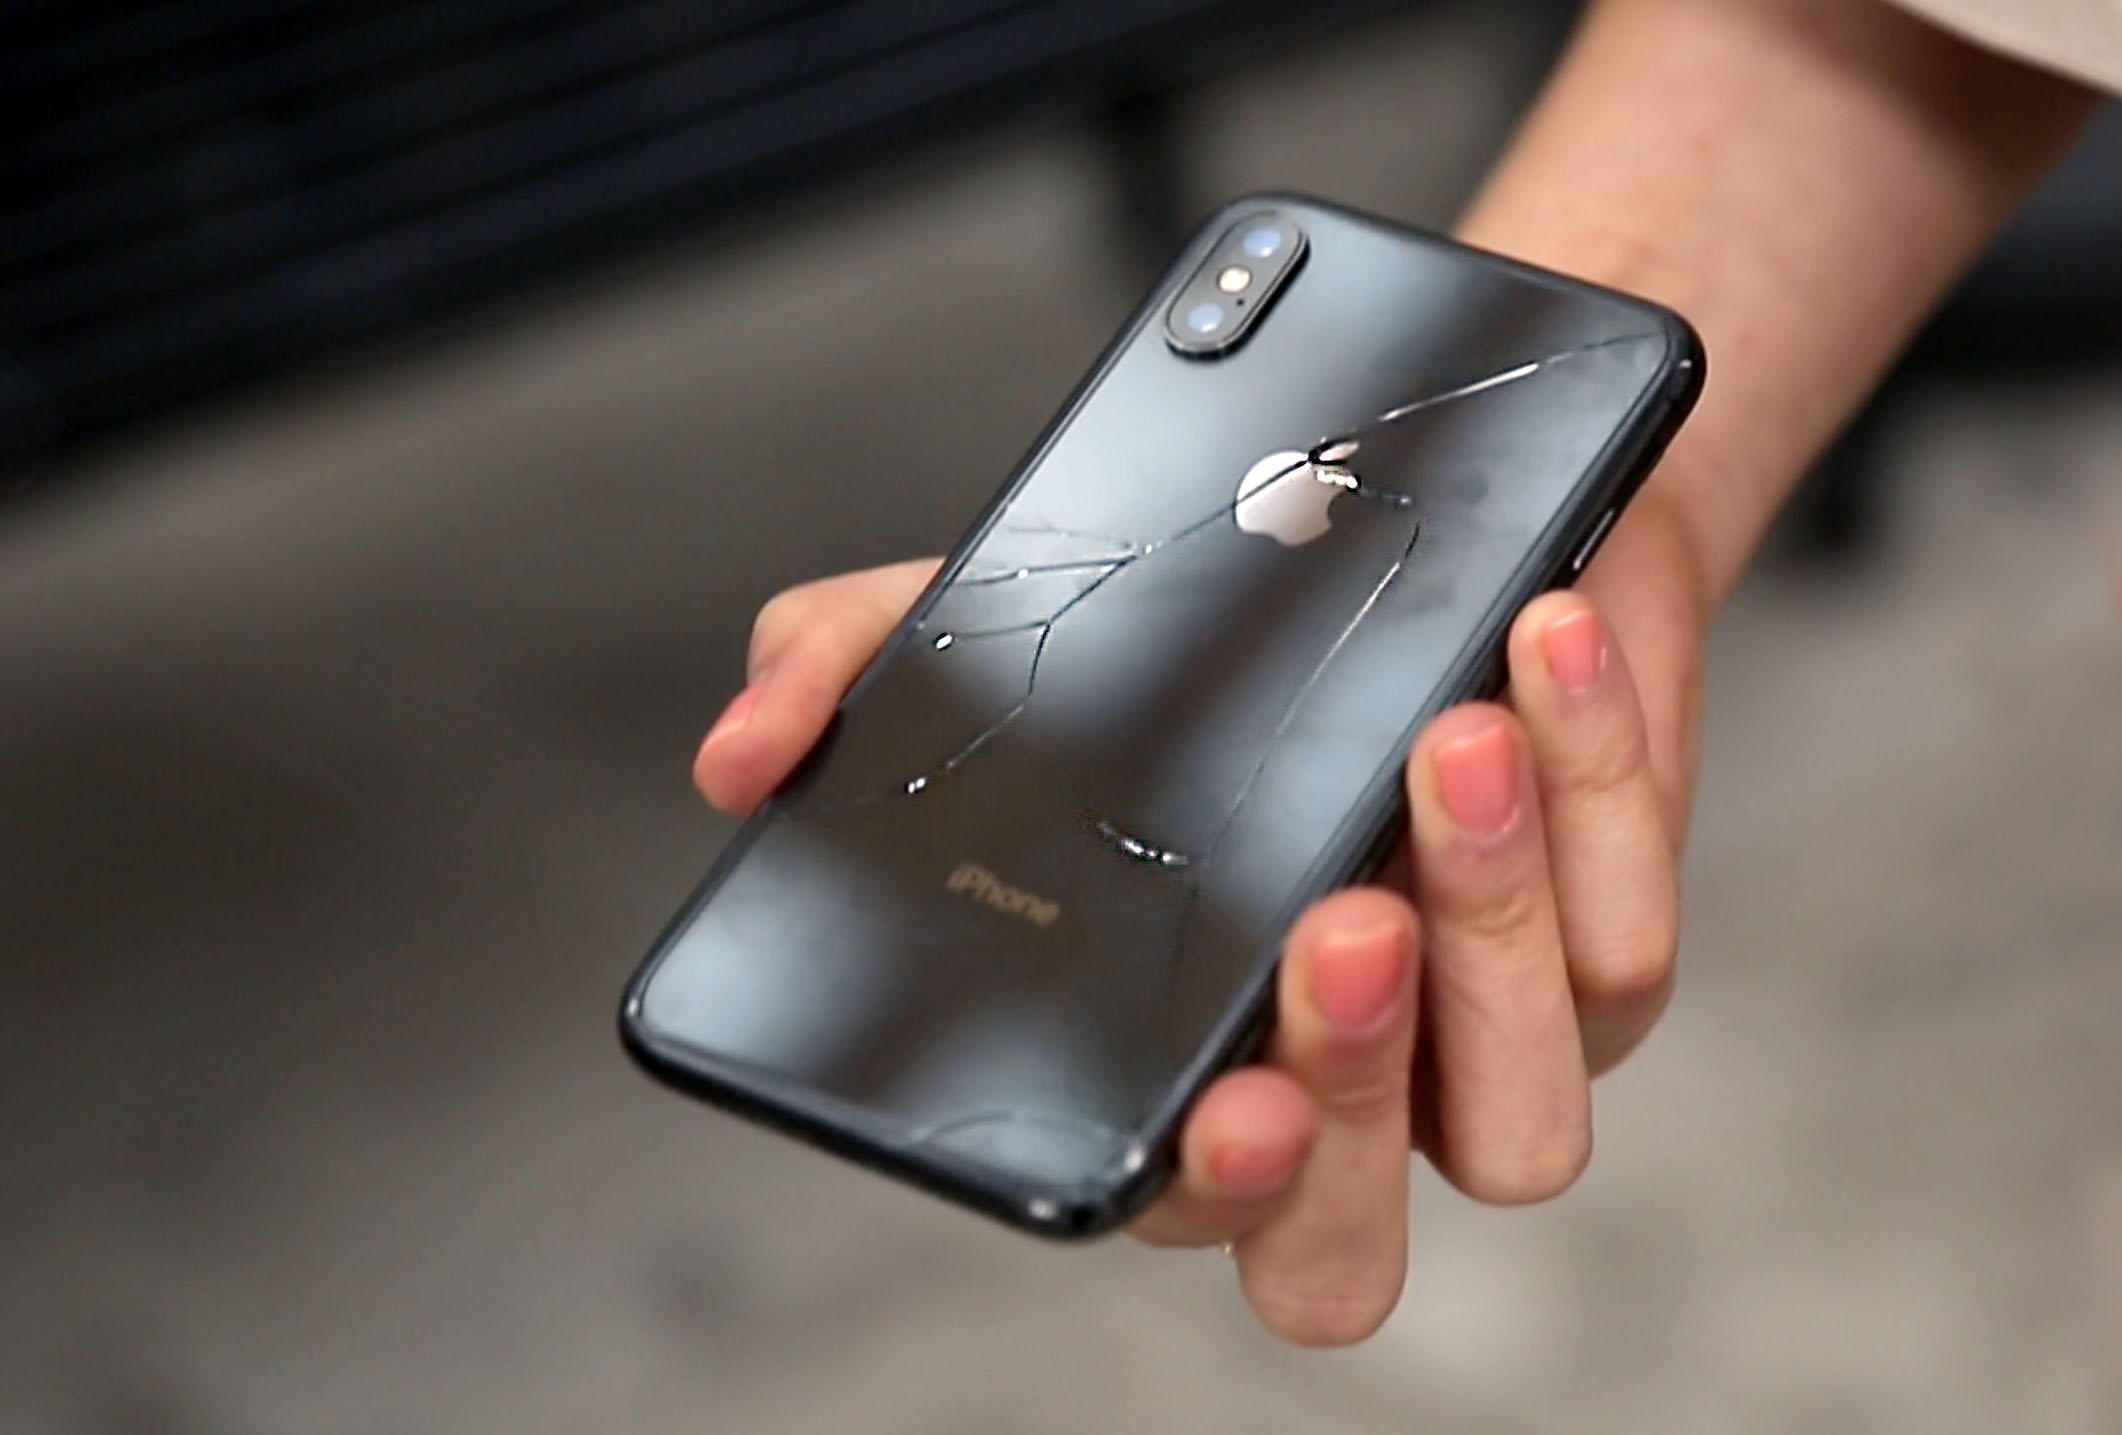 Apple iPhone X drop test: It cracked on the first drop - CNET